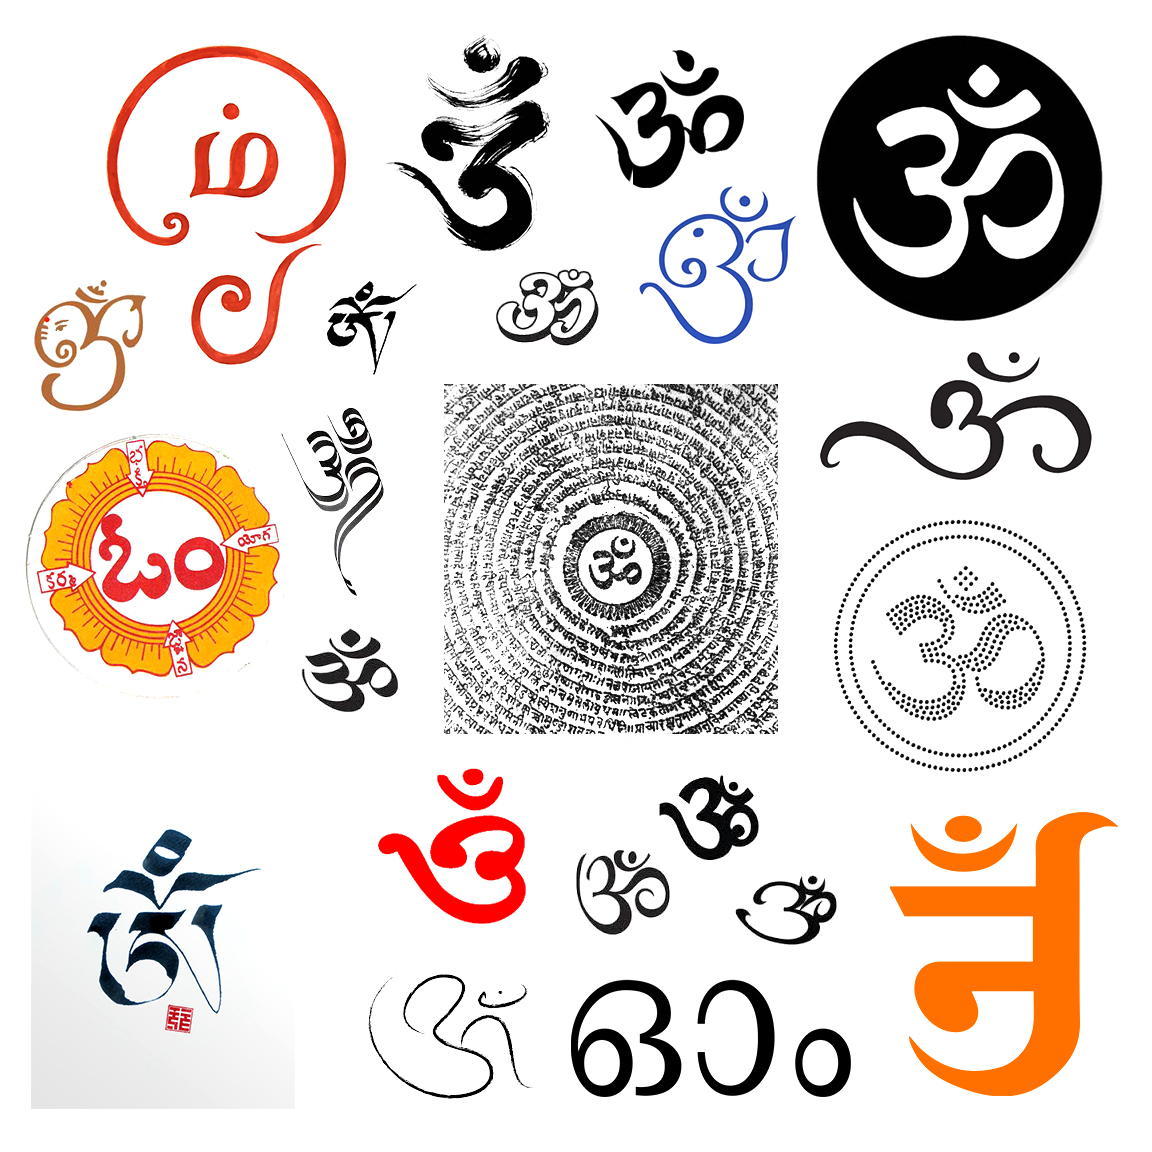 Om symbols – Font Aid VIII | HINDI RINNY - ClipArt Best - ClipArt Best